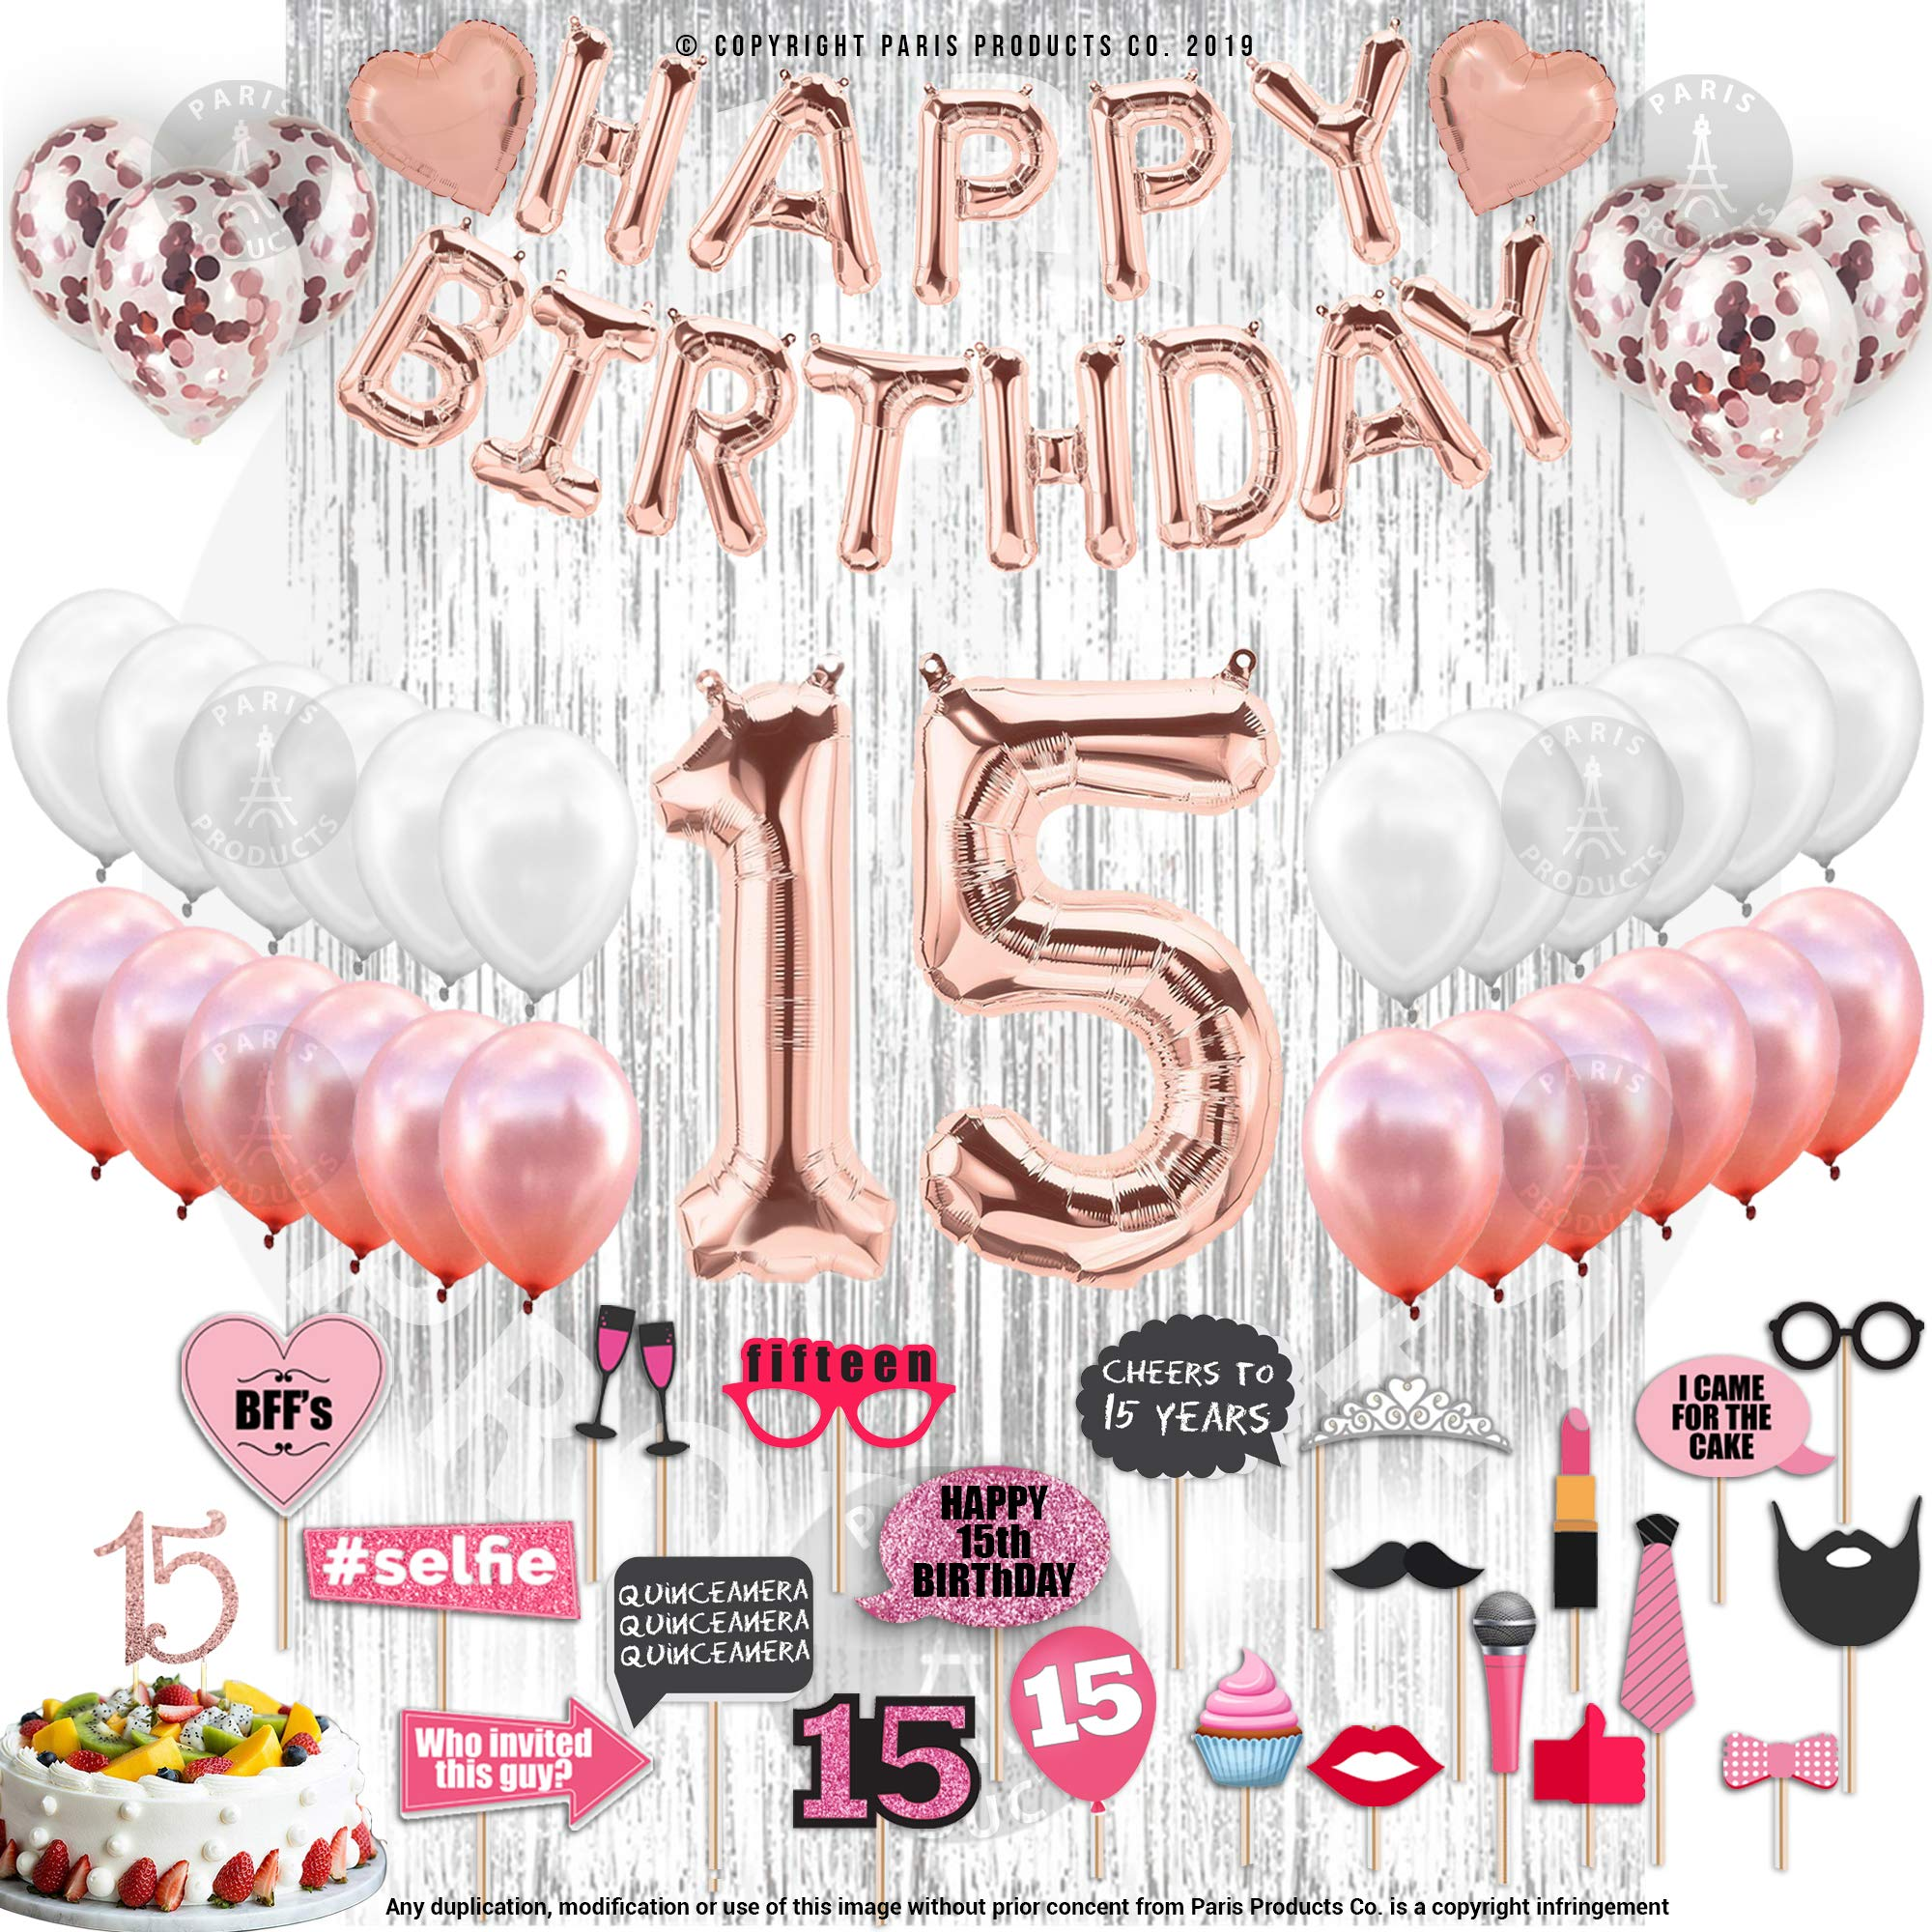 15th BIRTHDAY DECORATIONS| With Photo Props |15 Birthday Party Supplies| Quinceanera| 15 Cake Topper Rose Gold| Banner Rose Gold Confetti Balloons for her Silver Curtain Backdrop Props Photos 15thBday by PARIS PRODUCTS CO.